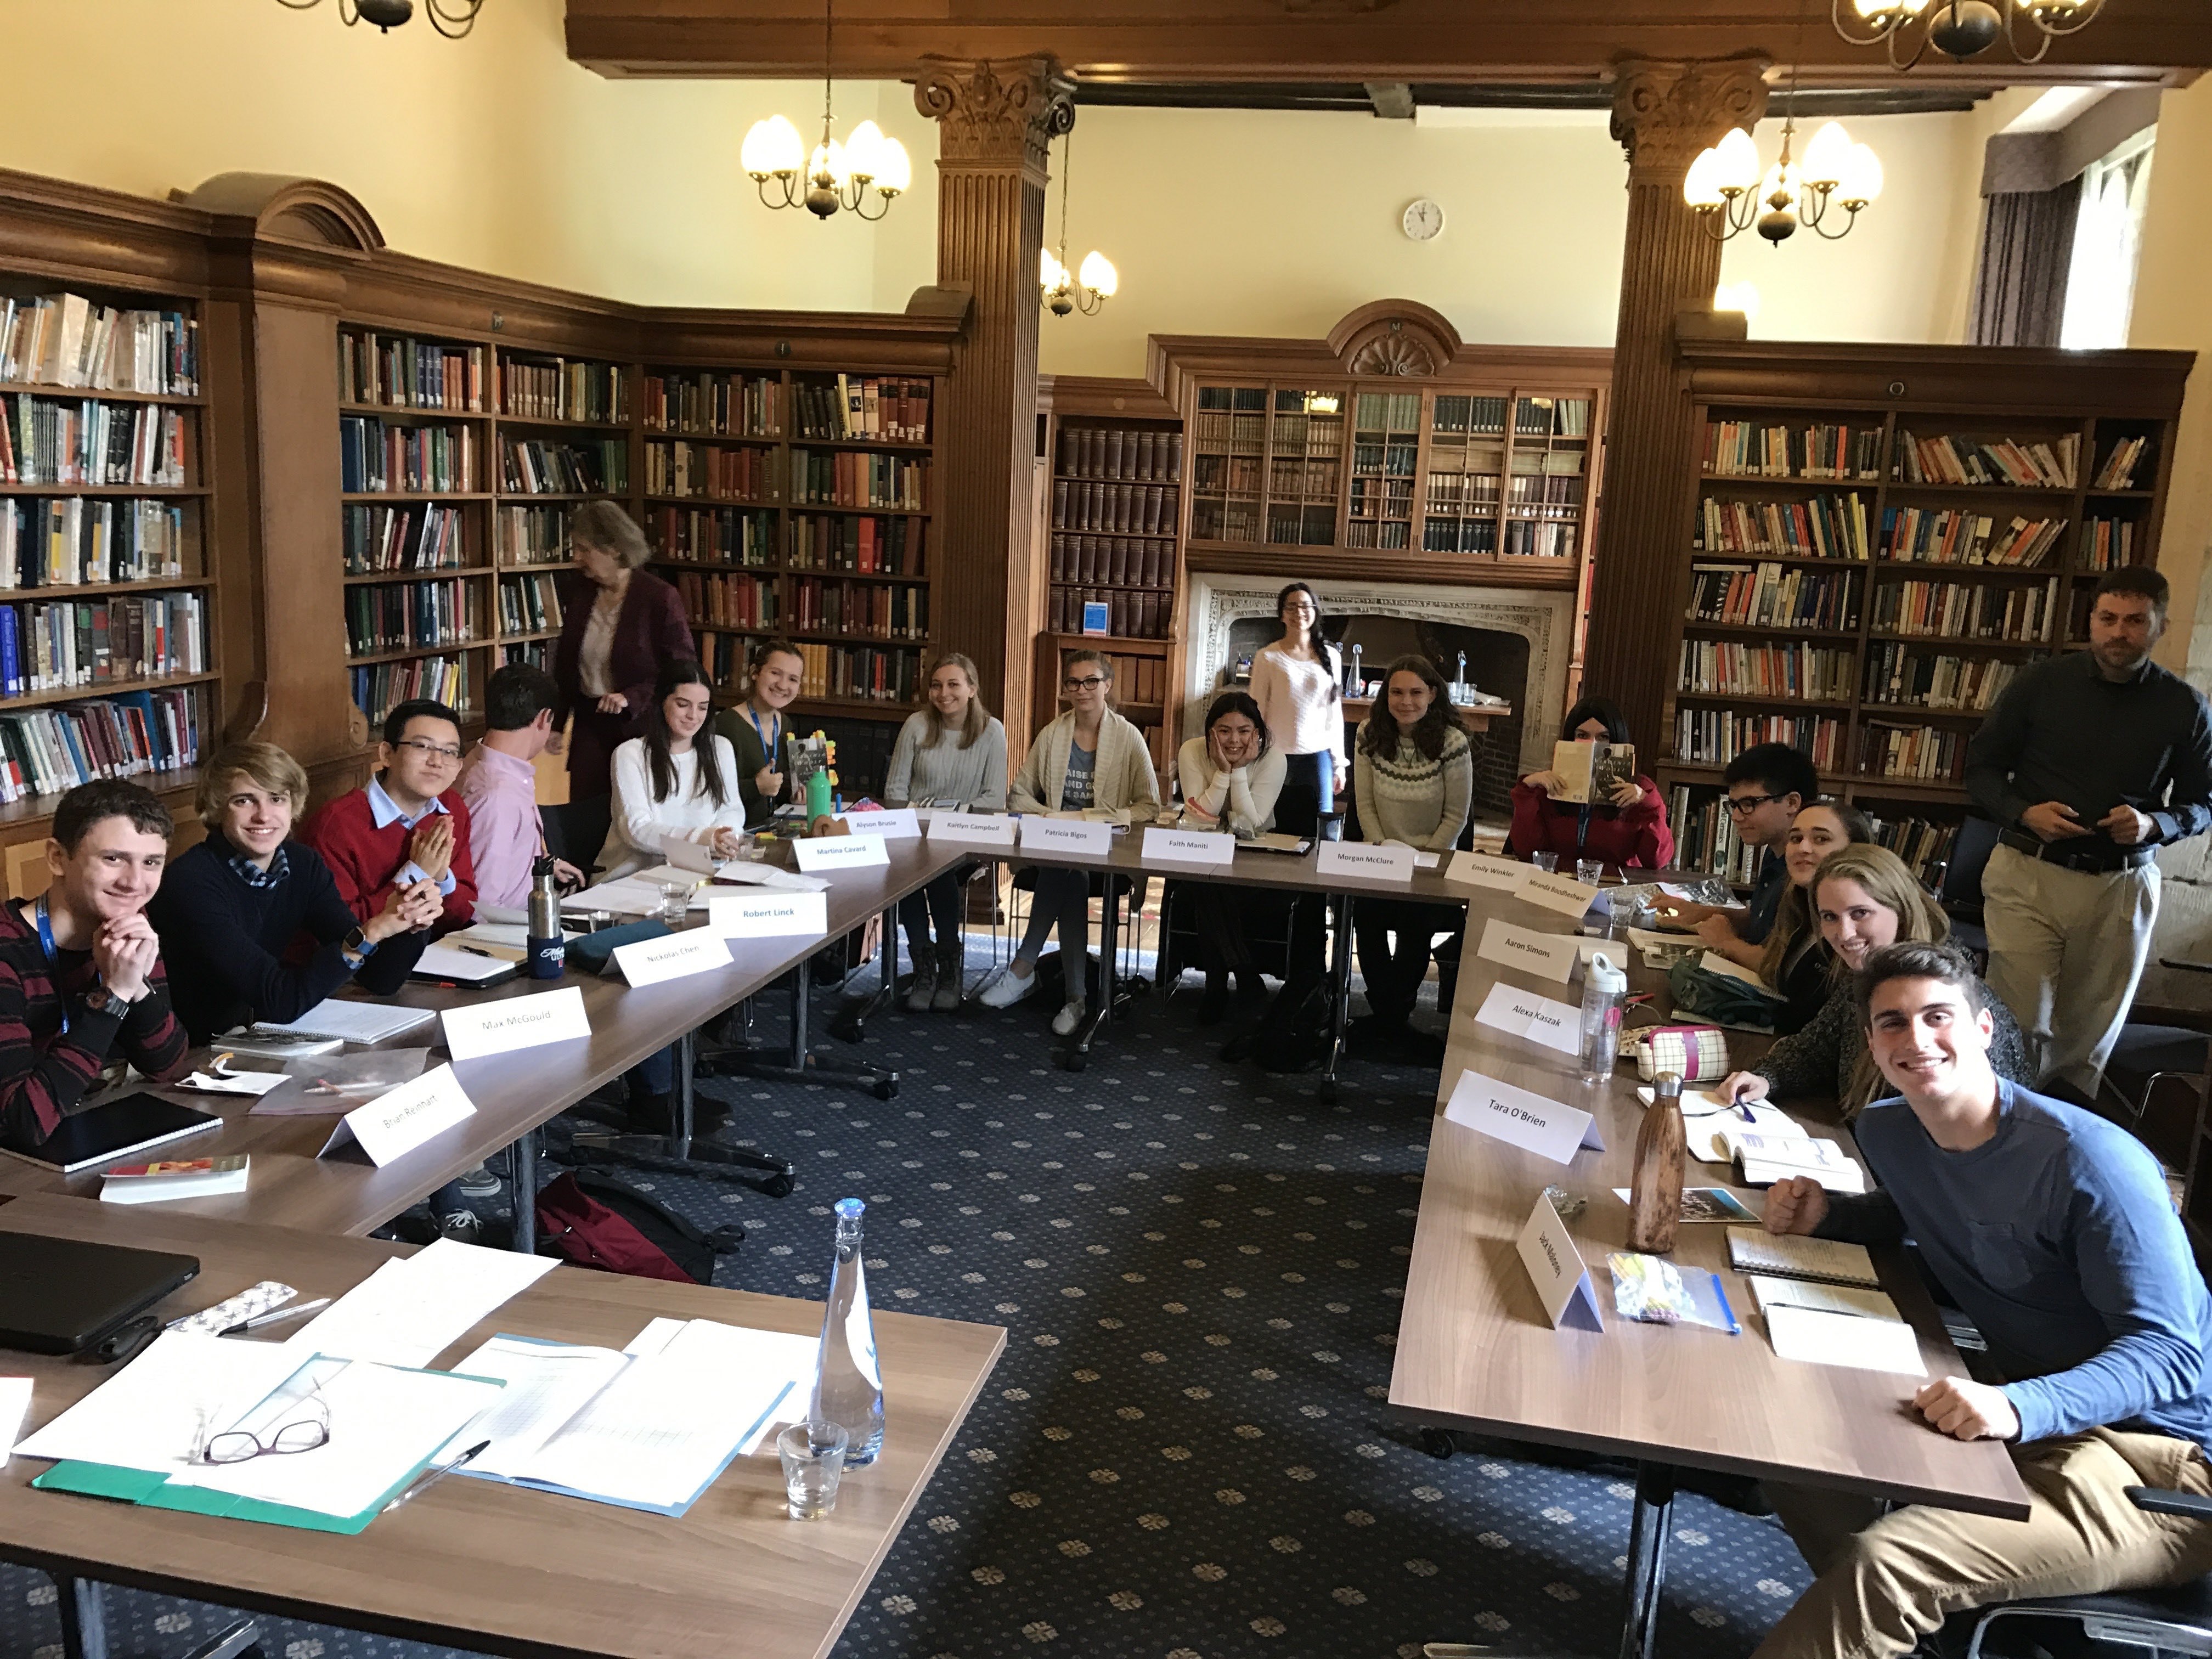 signature programs oxbridge academy foundation inc the cambridge connection deepened last year when we sent four oxbridge teachers to study the institute for continuing education summer program